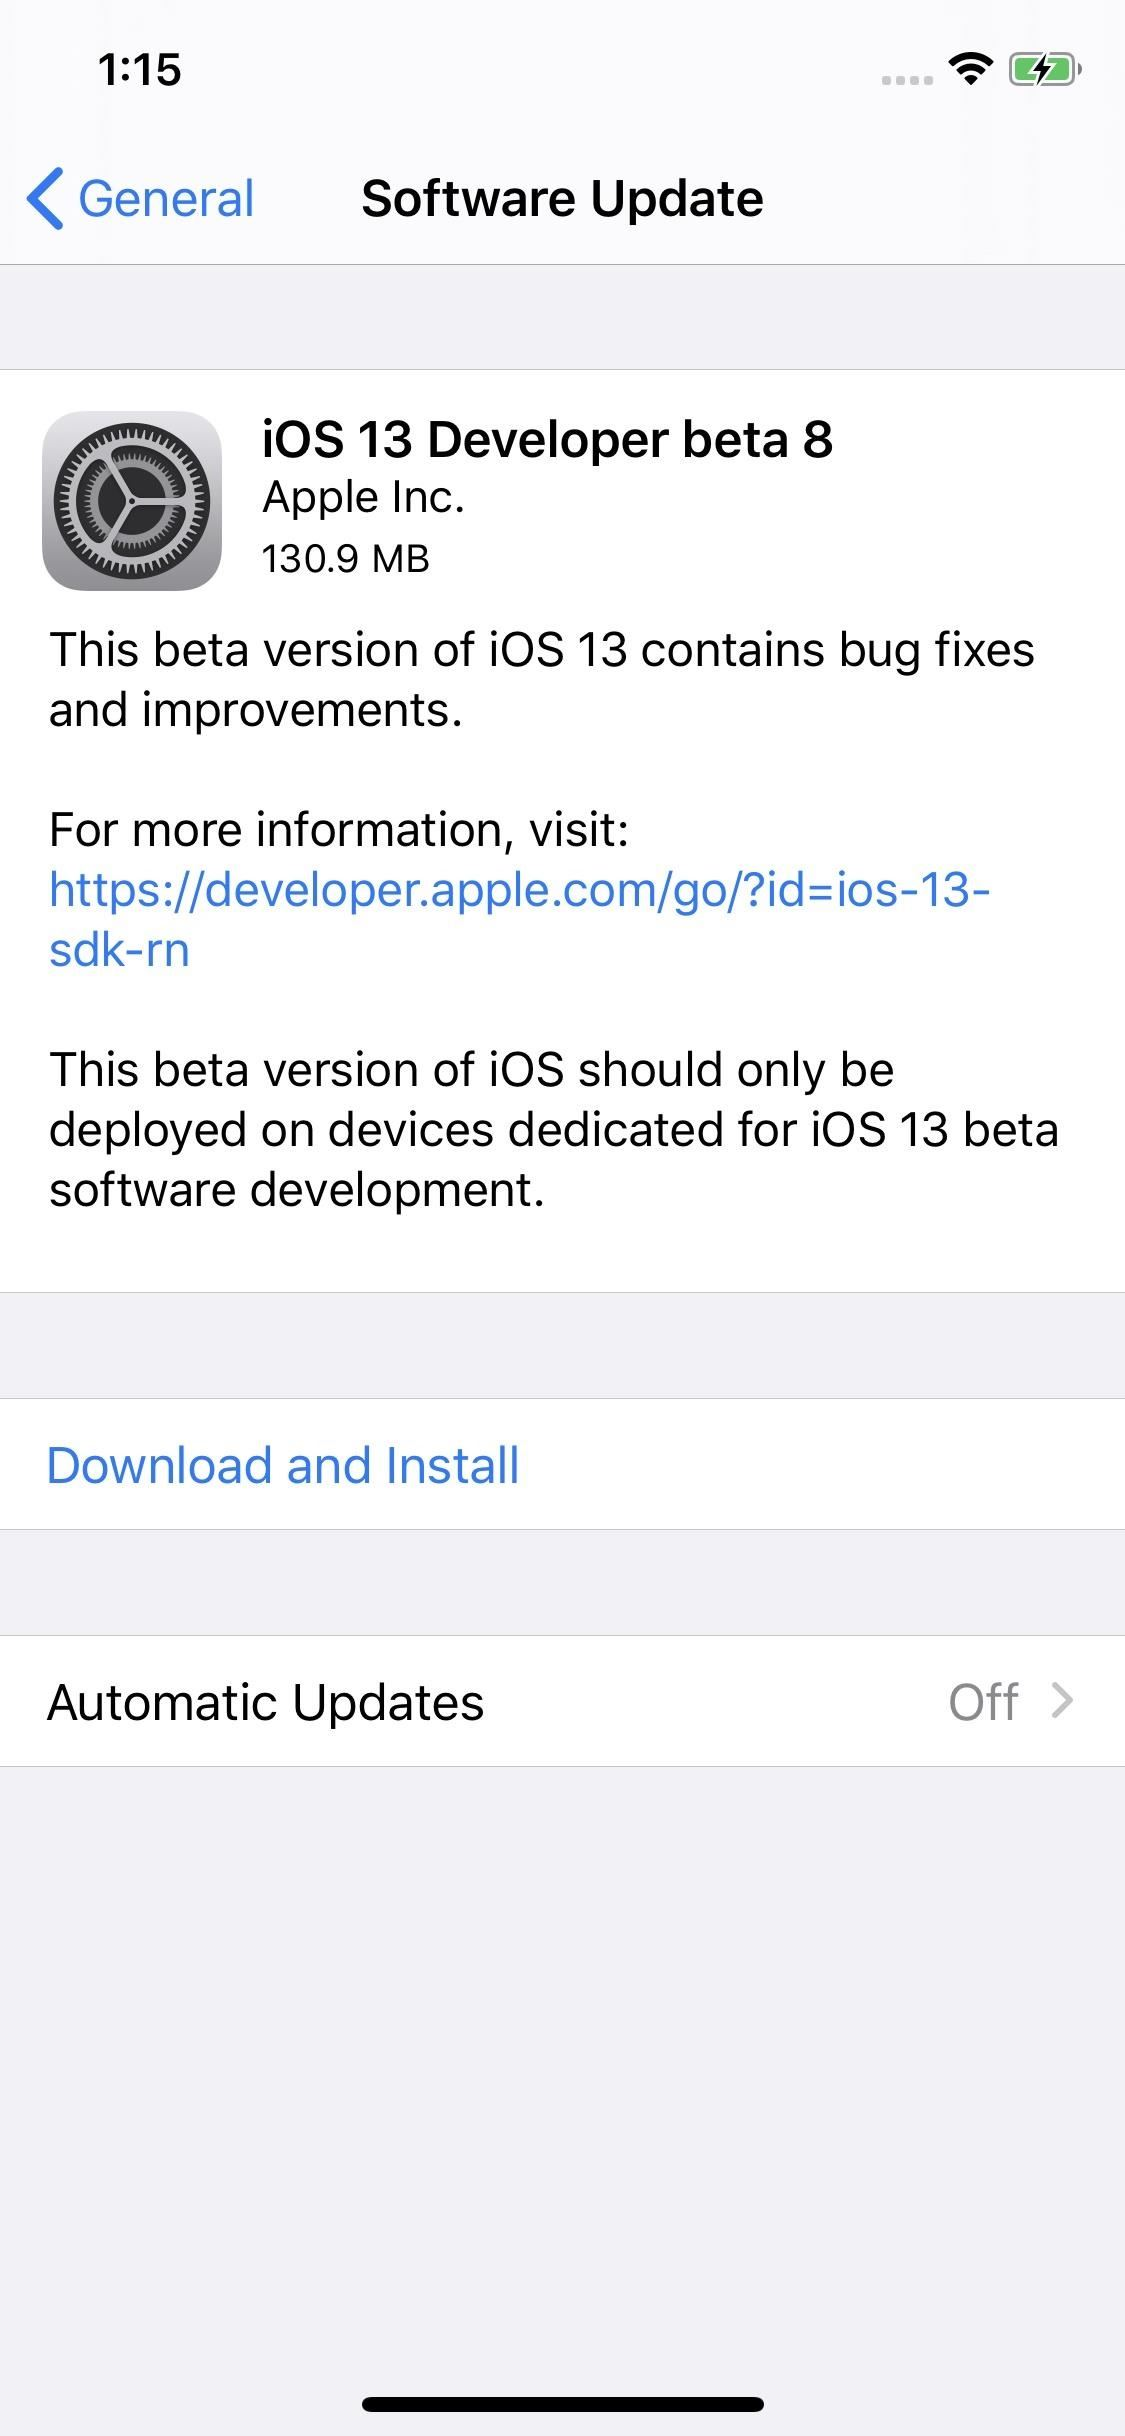 Apple Releases iOS 13 Beta 8 to Developers